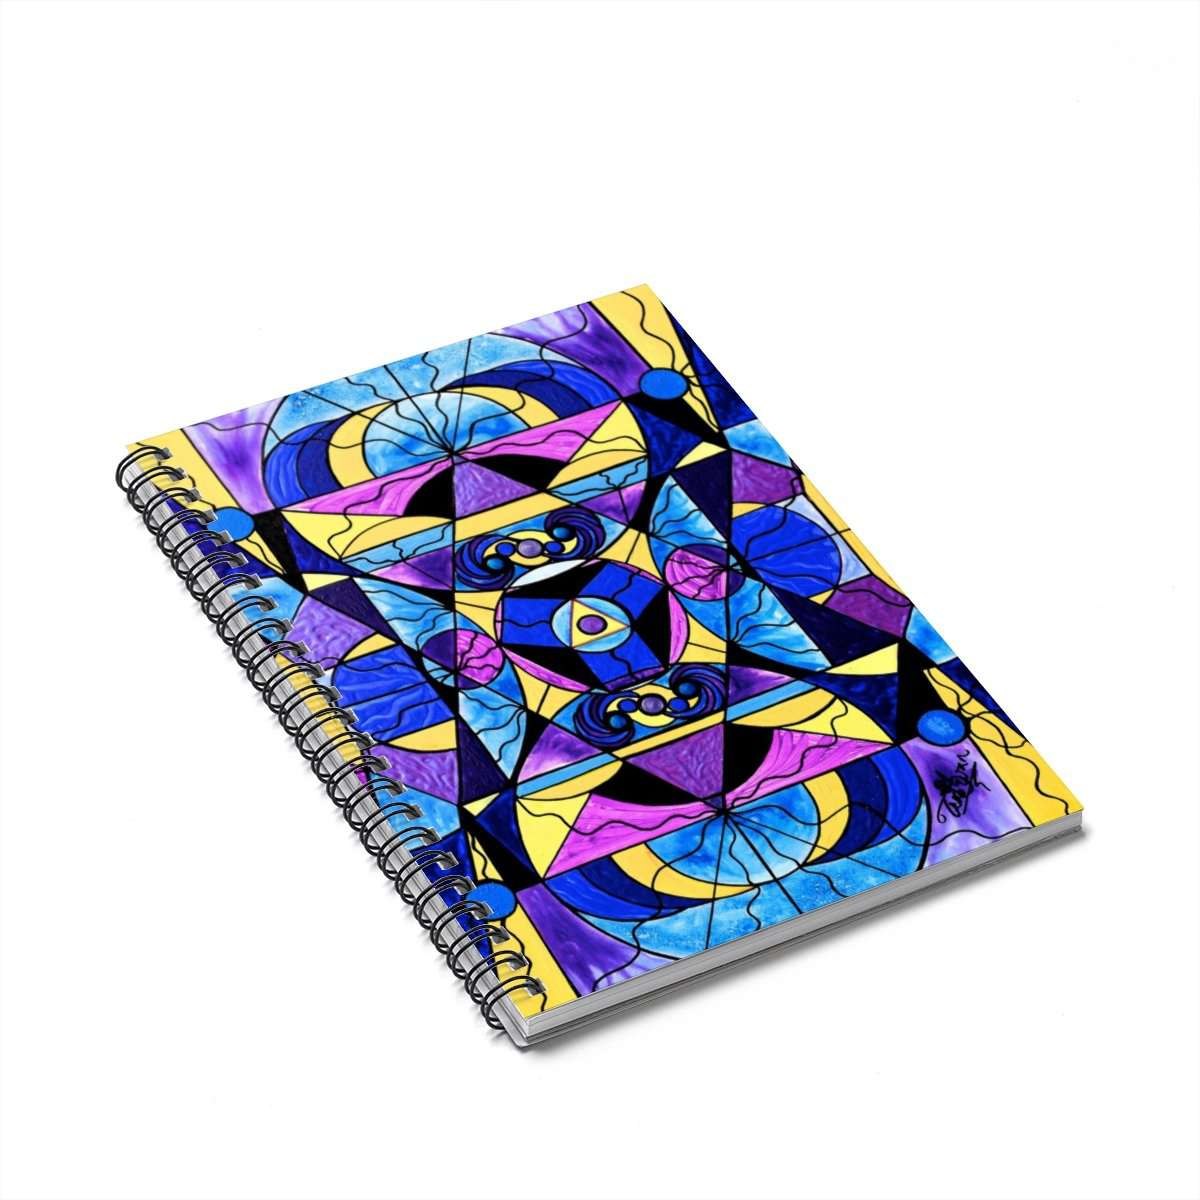 I Know - Spiral Notebook